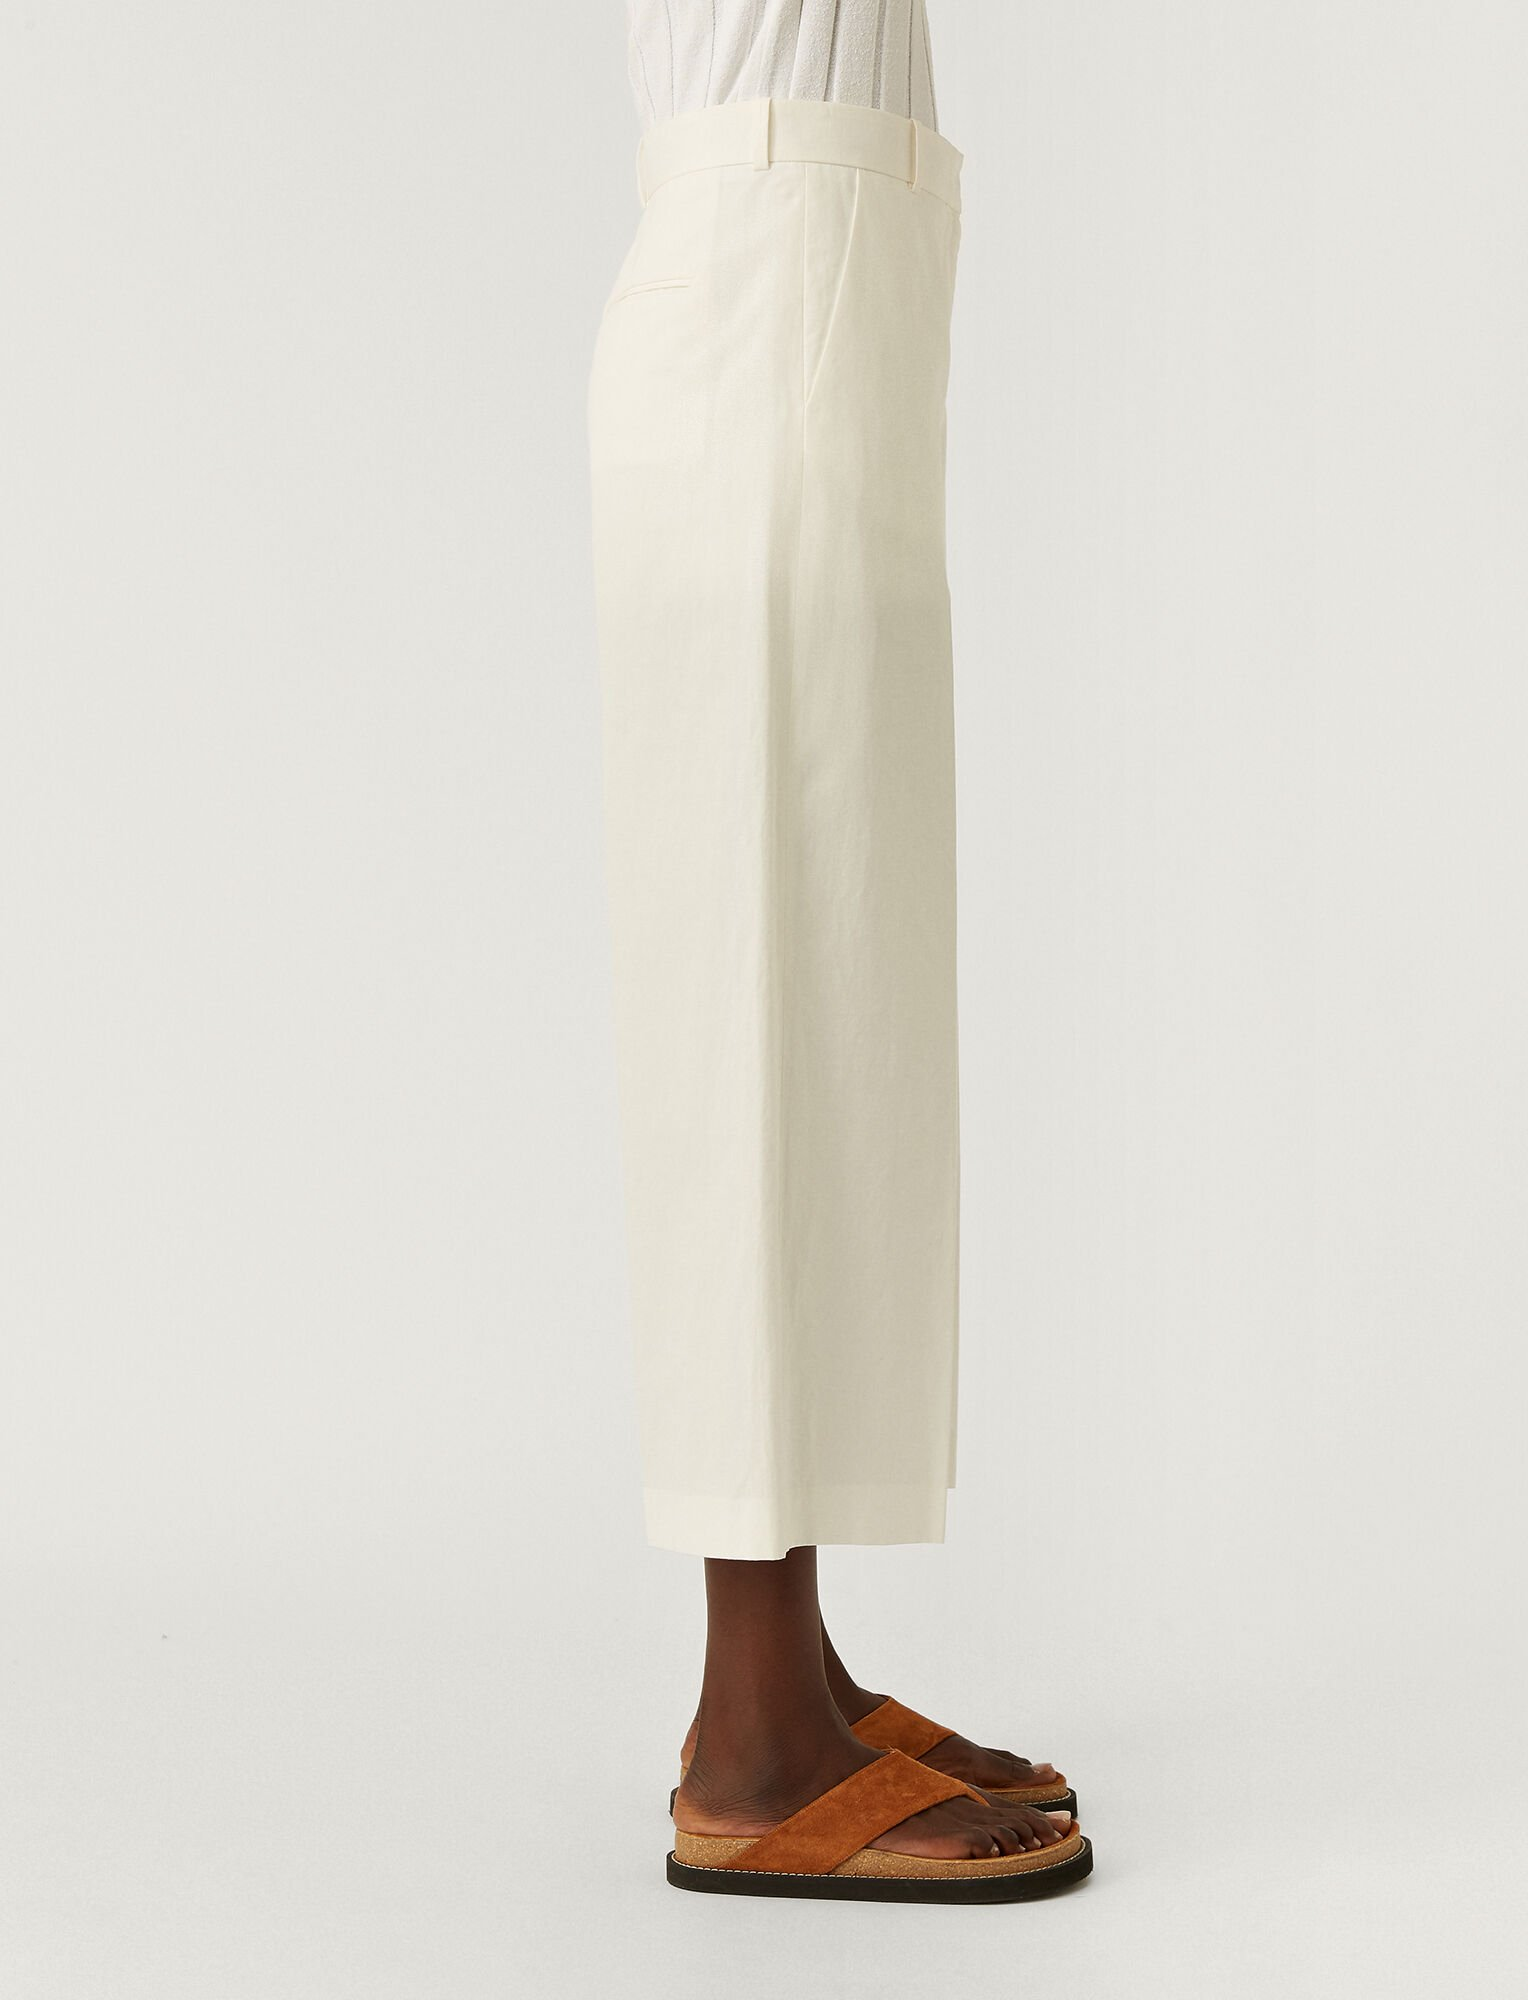 Joseph, Cotton Linen Talan Trousers, in OFF WHITE